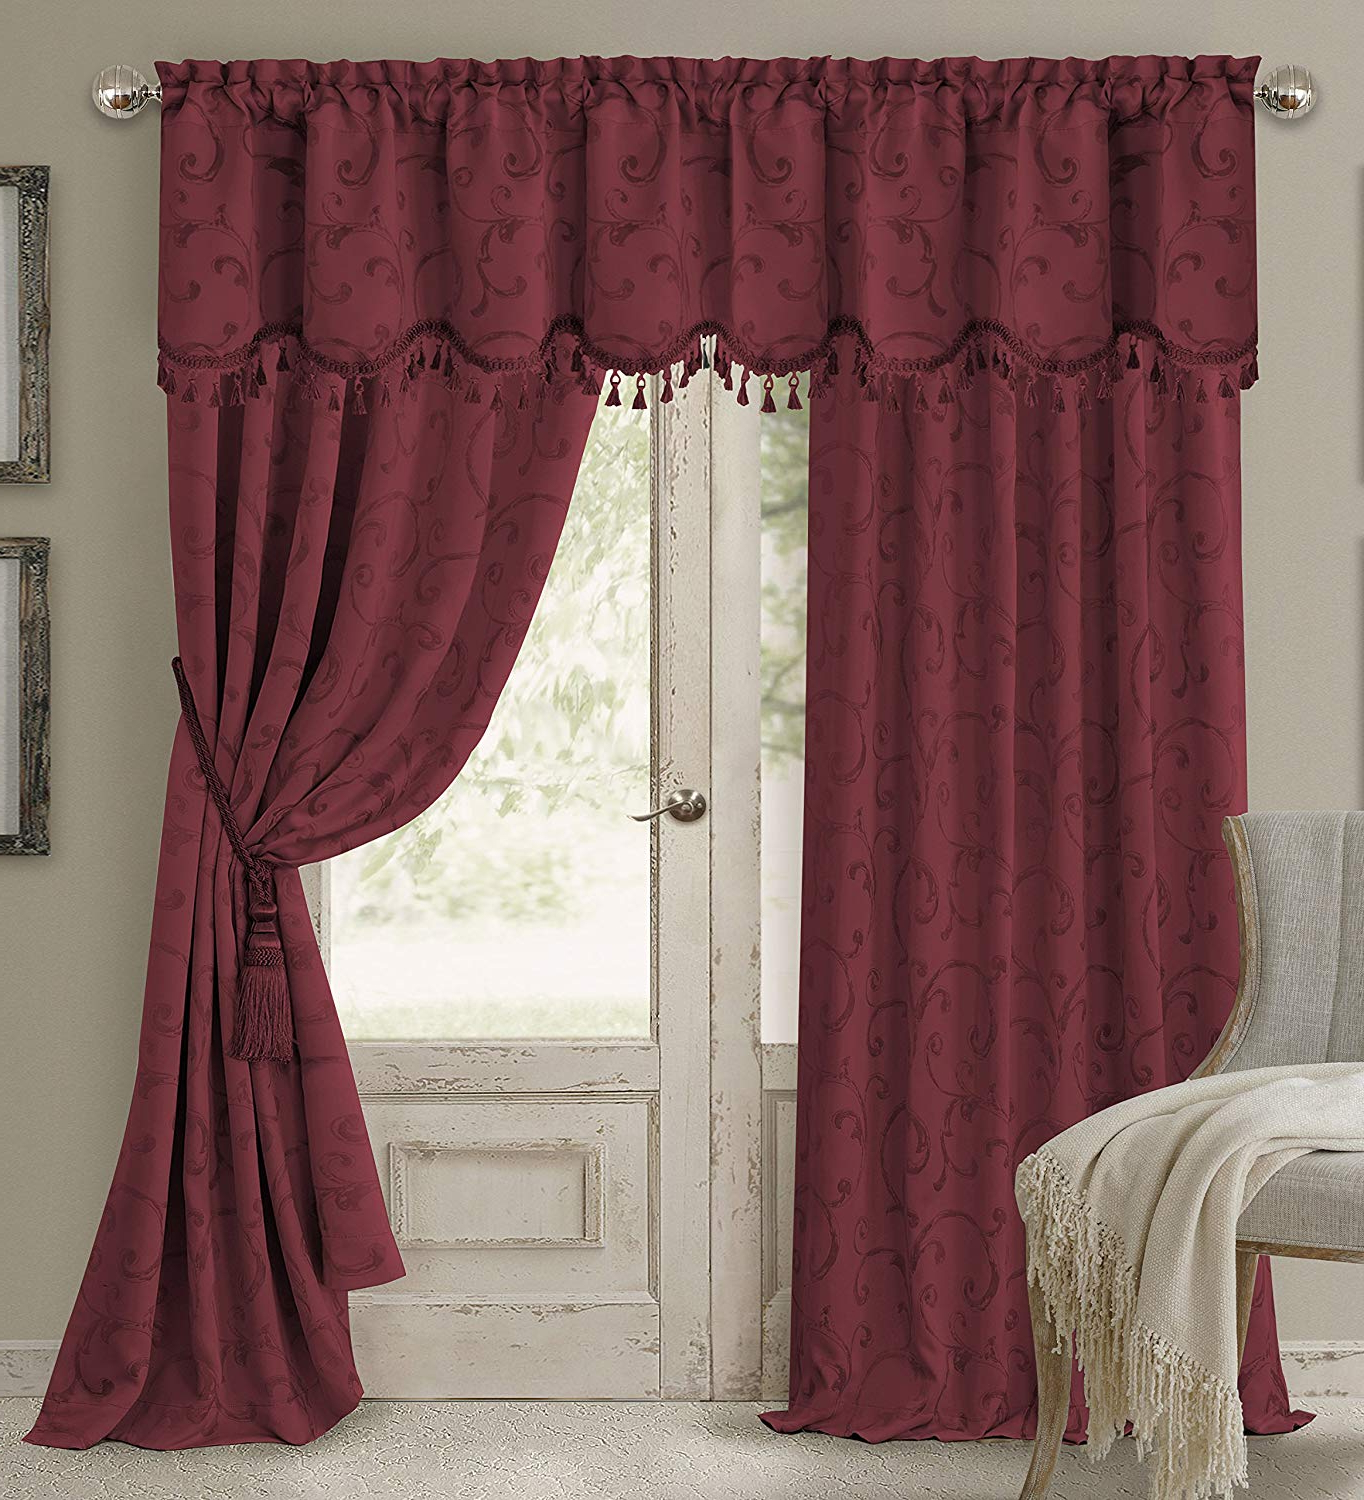 """Elrene Mia Jacquard Blackout Curtain Panels With Favorite Elrene Home Fashions Rod Pocket Damask Window Valance With Tassels, 52"""" W X 19"""" L, Rouge (1 Valance) (View 14 of 20)"""